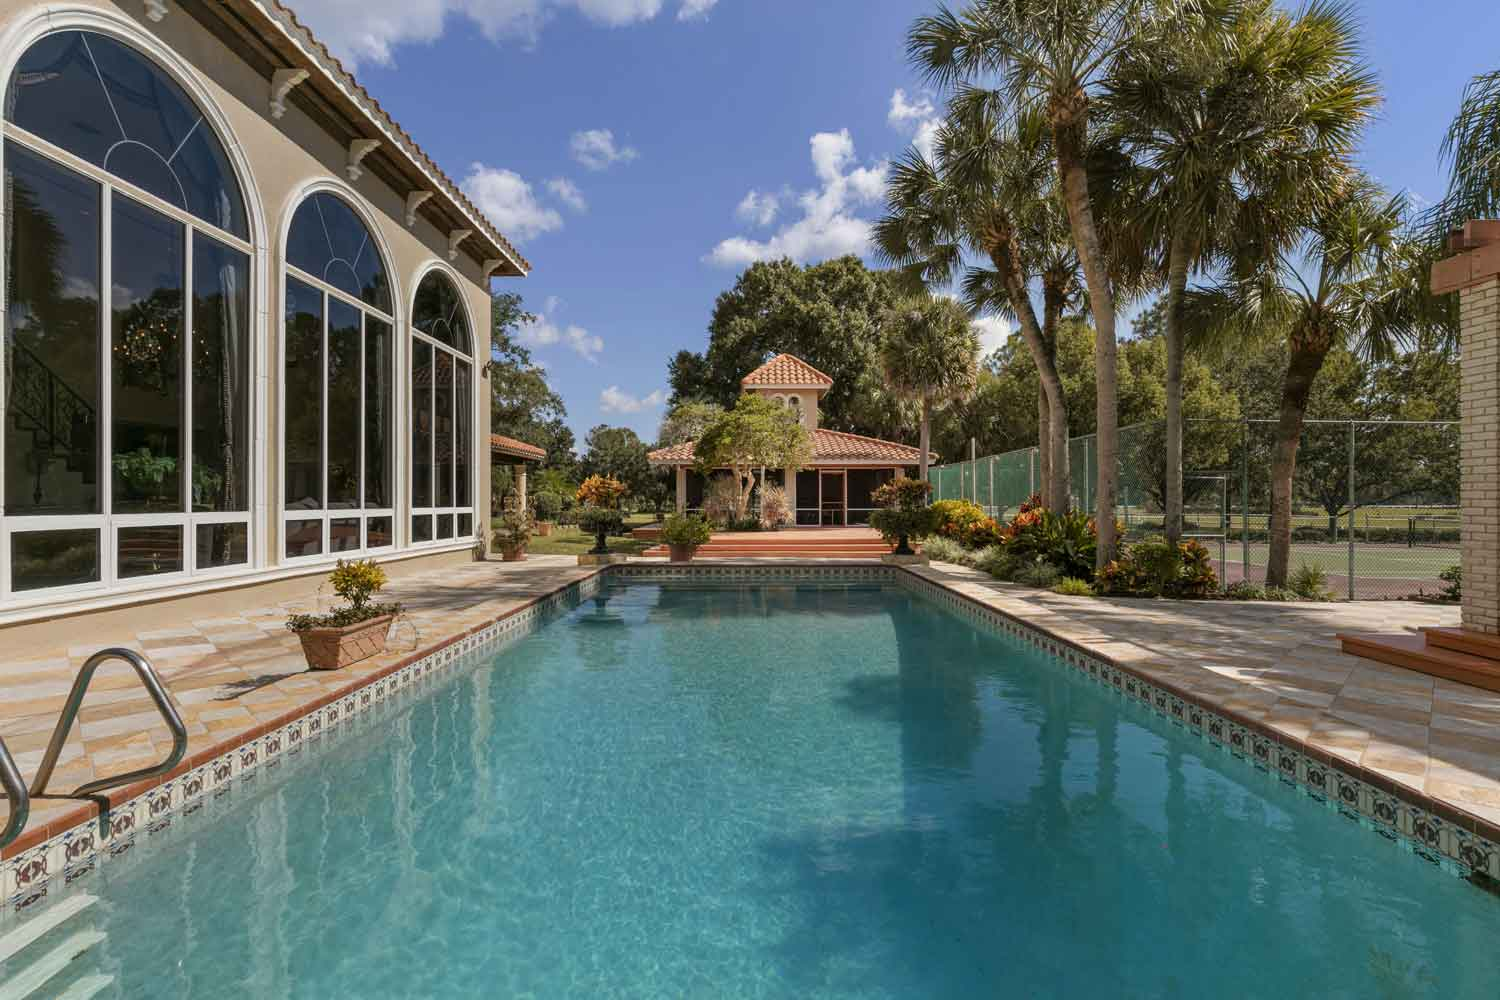 <b>Tavares, Florida</b><br/><i>3 Bedrooms, 4,742 sq. ft.</i><br/>Elegant equestrian estate on 152 acres